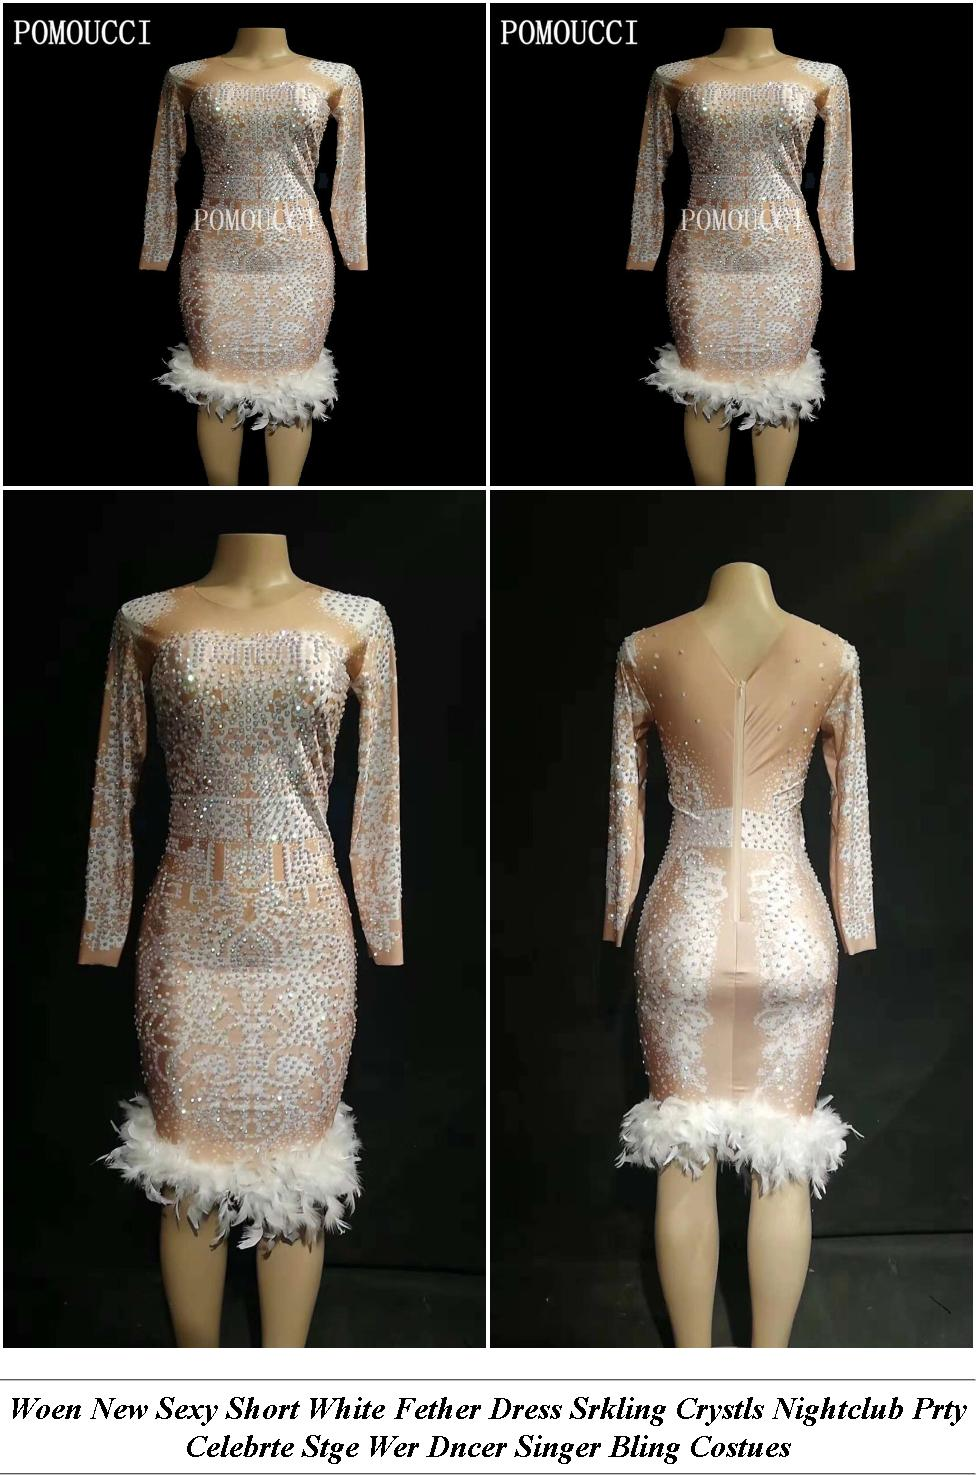 Classy Outfits For Dinner - Vintage Dresses Clothing Stores - Lack Party Dresses Canada